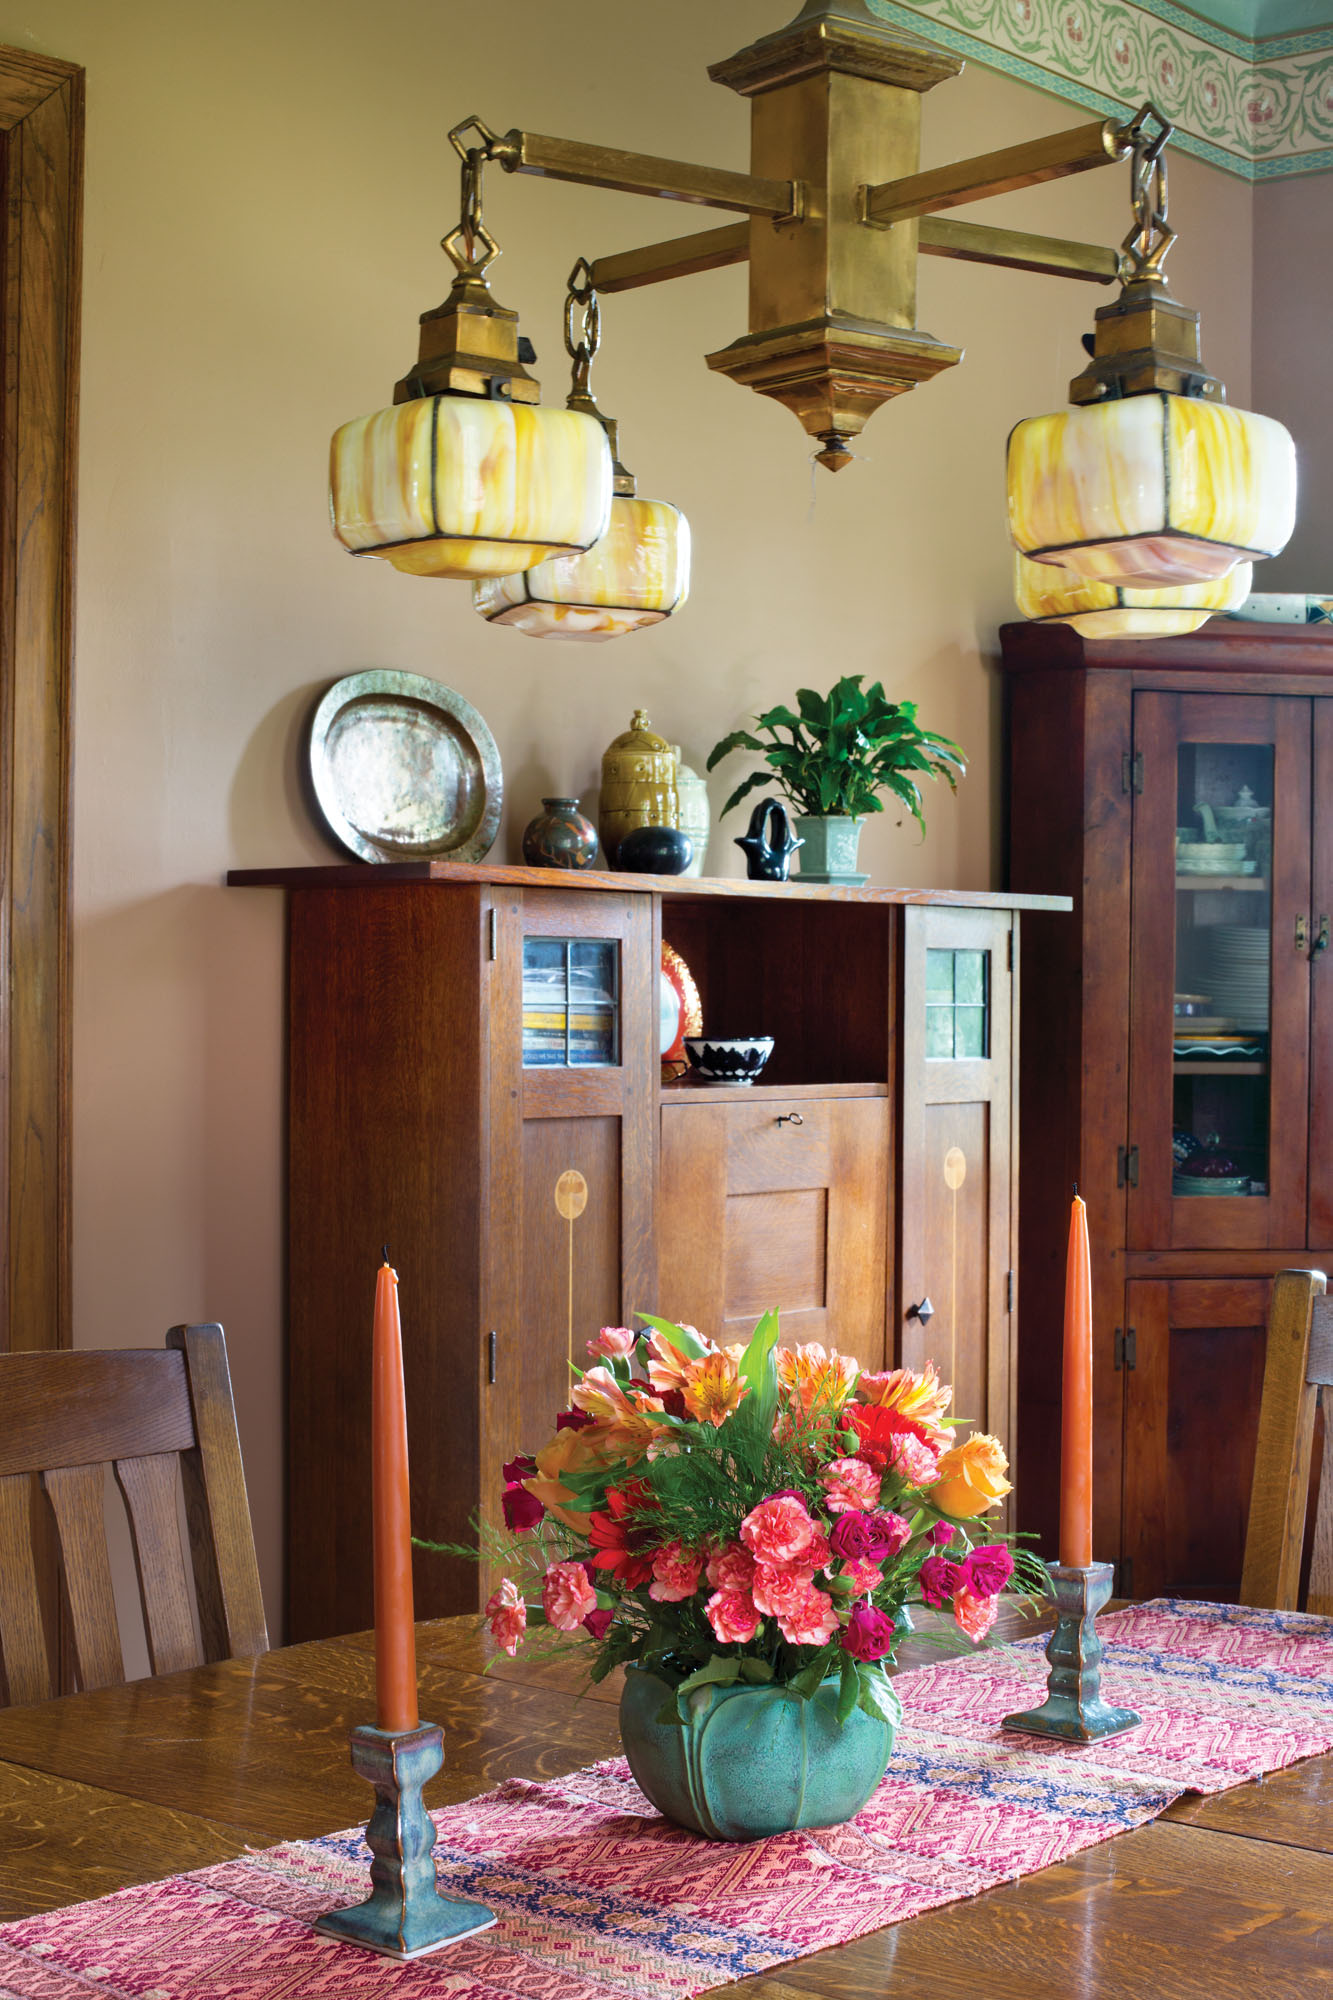 Stickley cabinet in dining room